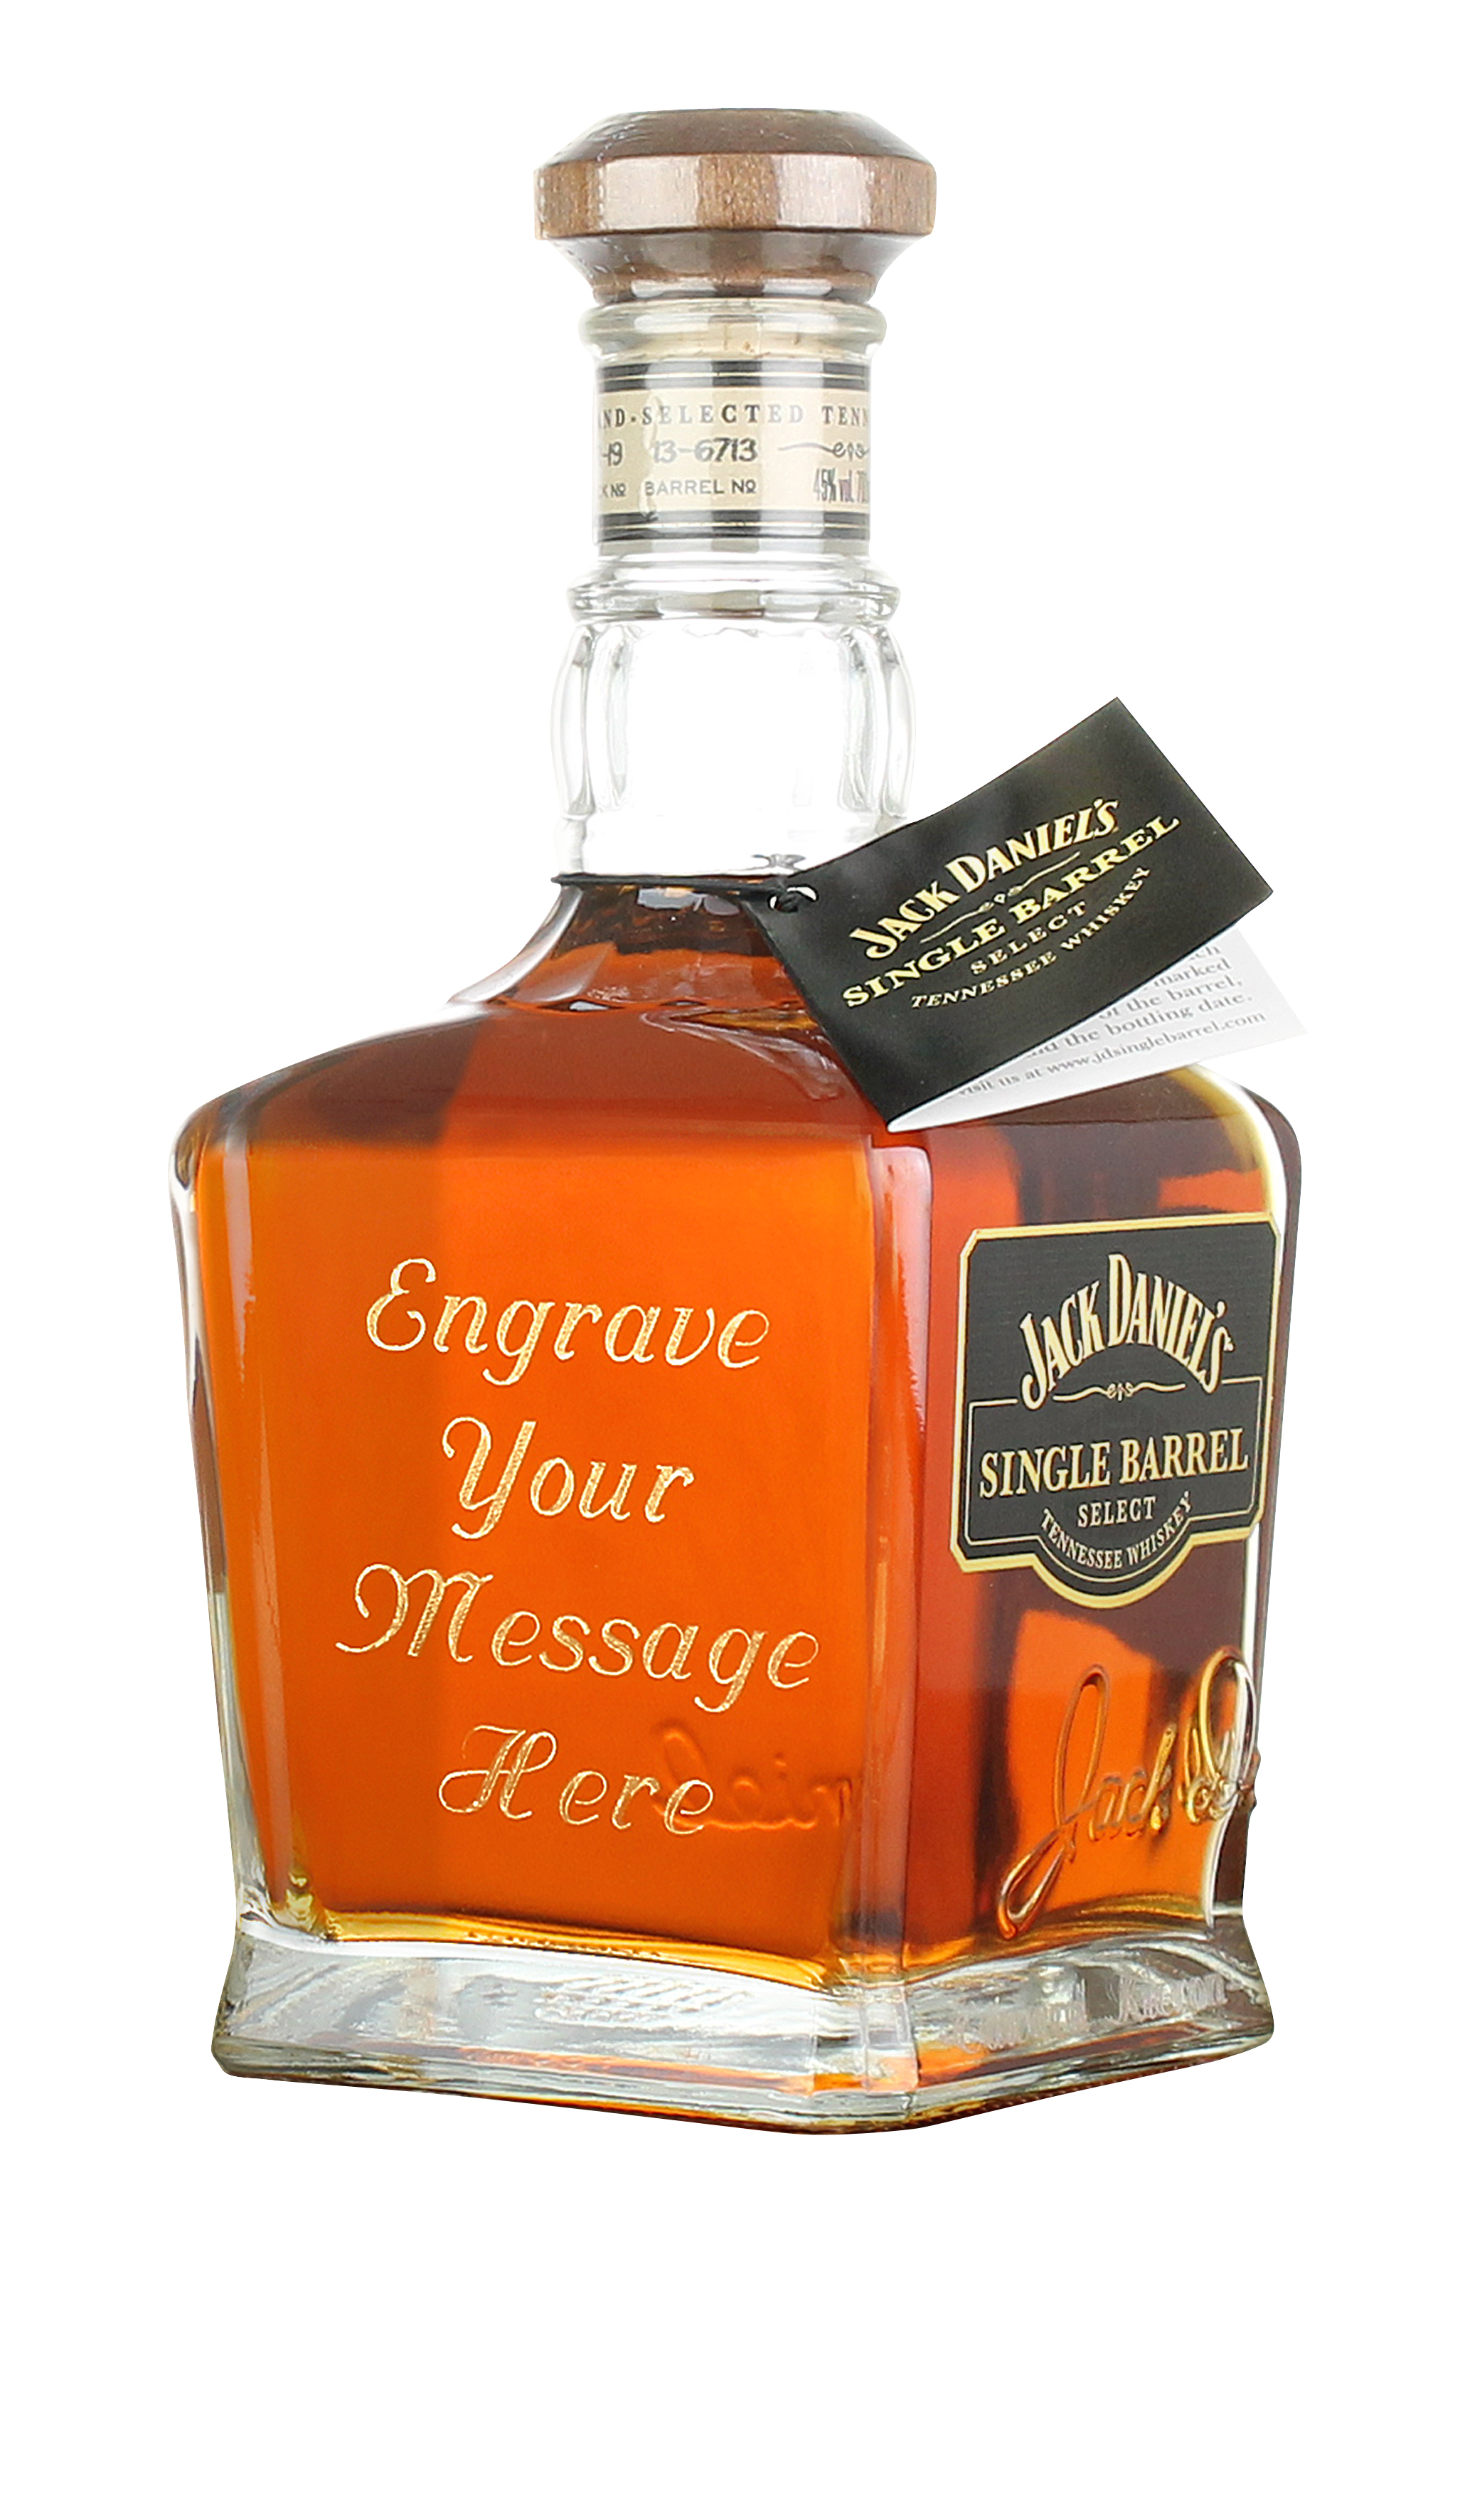 daniels singles & personals Jack daniel's family of brands - united states change country/language jack daniel's old no 7 tennessee whiskey (40% alcohol by volume) 15 oz serving size  jack daniel's single barrel - barrel proof (70% alcohol by volume) 15 oz serving size alcohol: 25 g (18 standard drinks) calories: 170: fat: 0 g: sodium: 00 g.